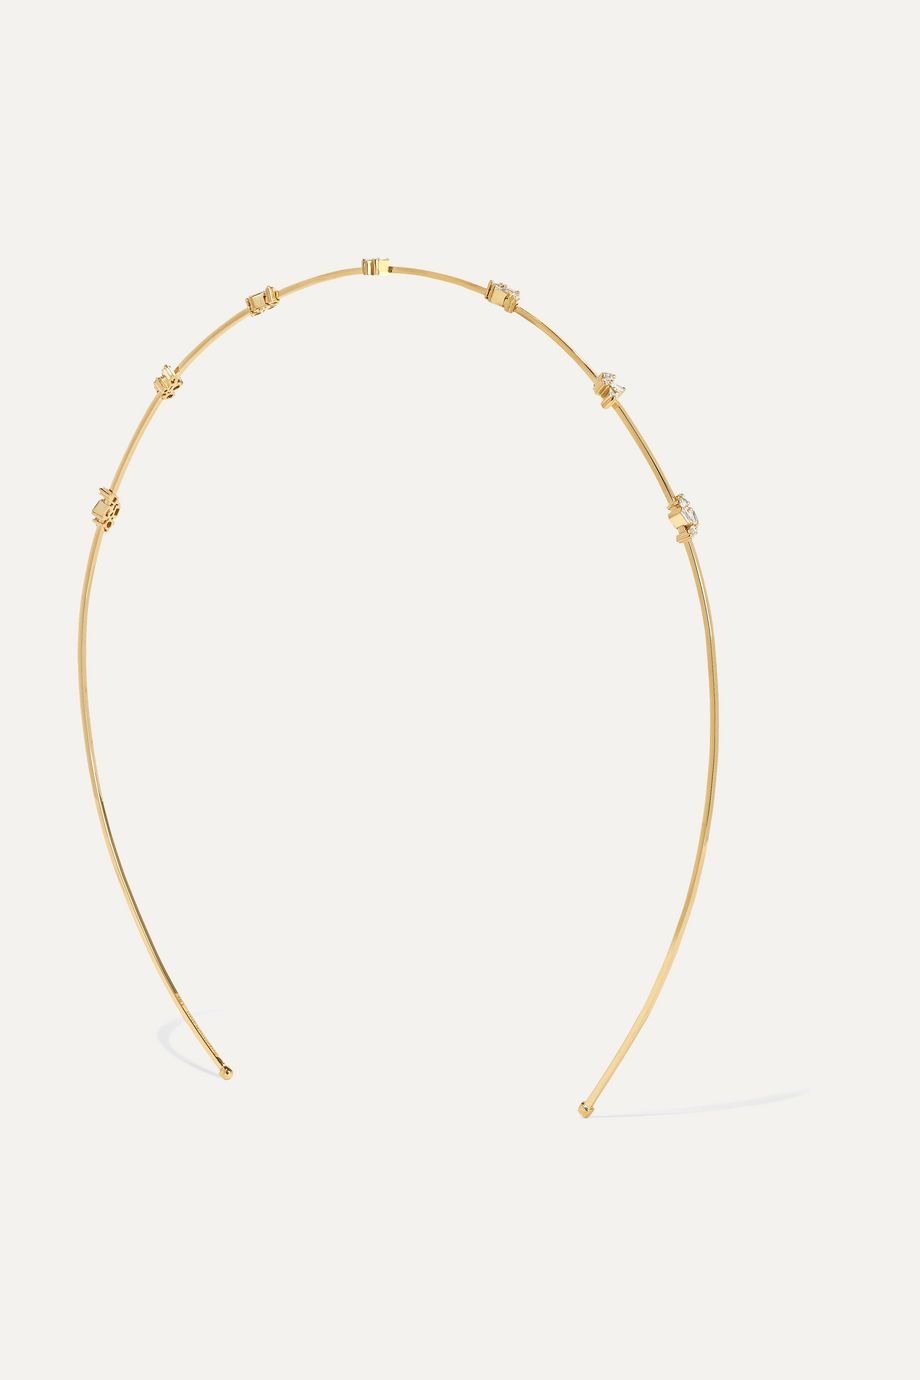 Suzanne Kalan 18-karat gold diamond headband